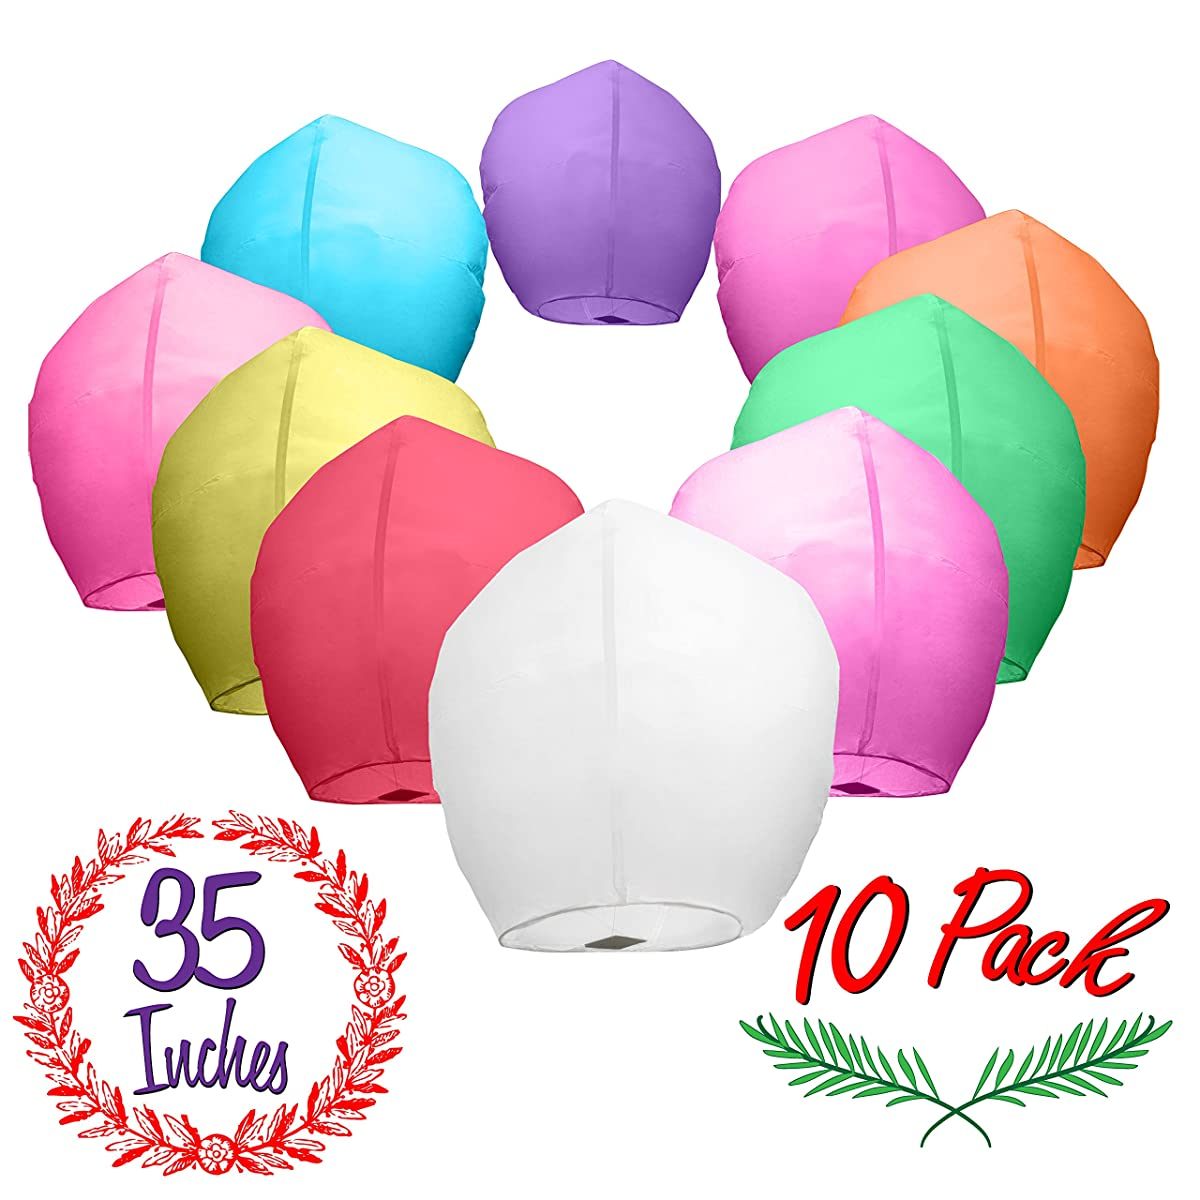 Chinese Paper Sky Lanterns (10) Colorful Mixed Pack - Ready to Use and Eco Friendly - Extra Large - 100% Biodegradable - Beautiful Blue Night Sky Lantern, New Years Eve, Chinese Festival